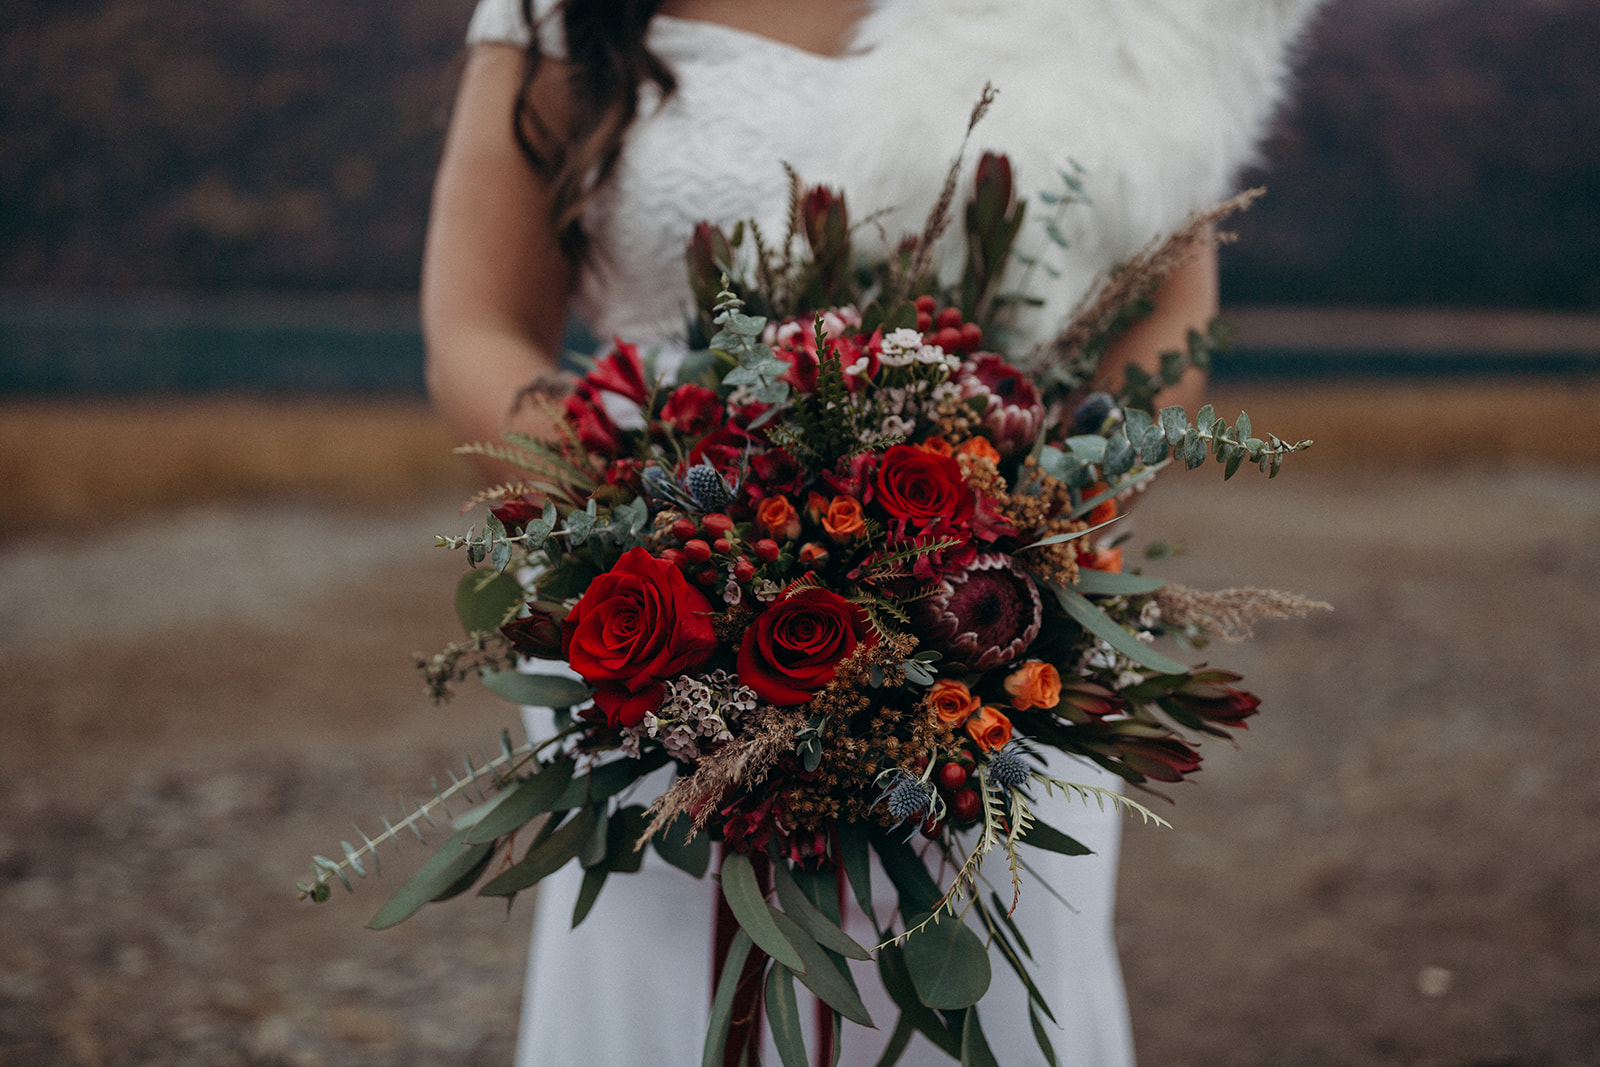 Bridal bouquet by Anchorage florist Natasha Price of Paper Peony Alaska | Photo by Kristian Irey